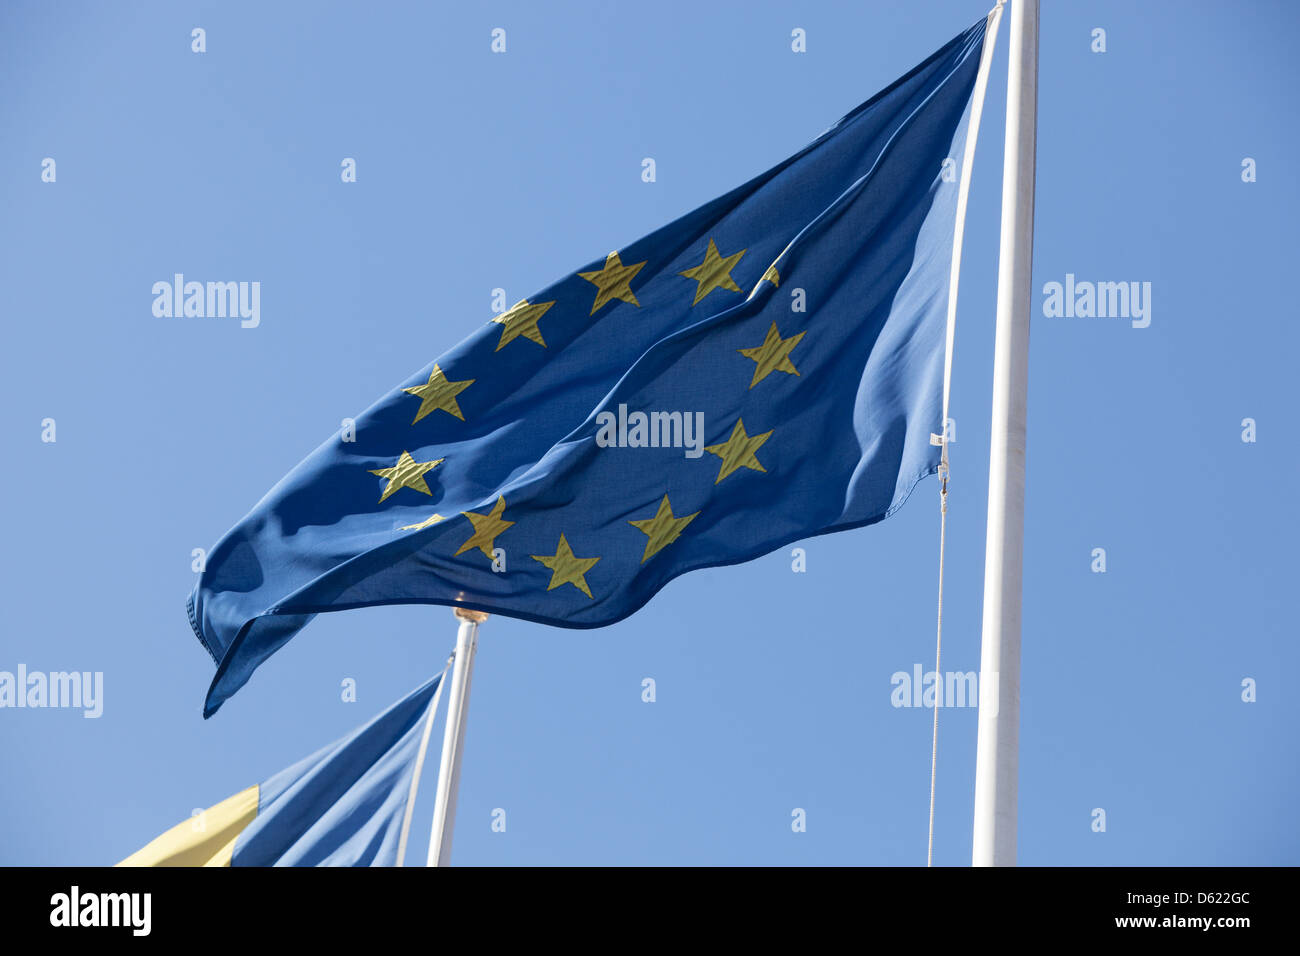 European Union flag fluttering in the breeze. - Stock Image